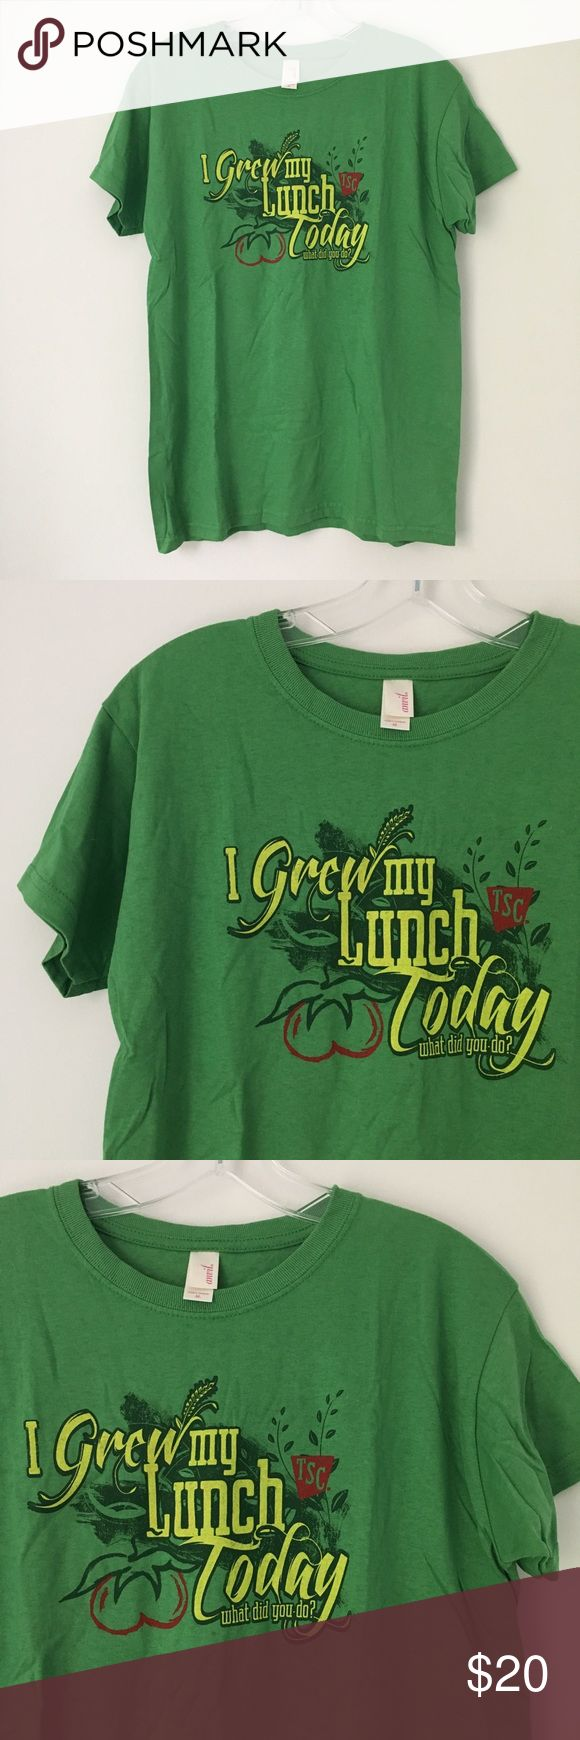 """GREEN TRACTOR SUPPLY FARM GARDEN TEE SHIRT TOP !! Tags: Cool TSC Tractor Supply Company Co. Farm Girl Country Cutie Farming Agriculture Tomato Tomatoes Garden Gardening """"I grew my lunch today, what did you do?"""" Sassy Sexy Bright Green Short Sleeve Graphic Tee Shirt Top.  Brand new. Never used. NO flaws.  MSRP: $29.95.  Tagged a MEDIUM, could also work for women's XS/Small depending on your desired style fit.  •Chest- 19"""" across •Length (shoulder to bottom hem)- 26"""" long  •NO holds, returns…"""